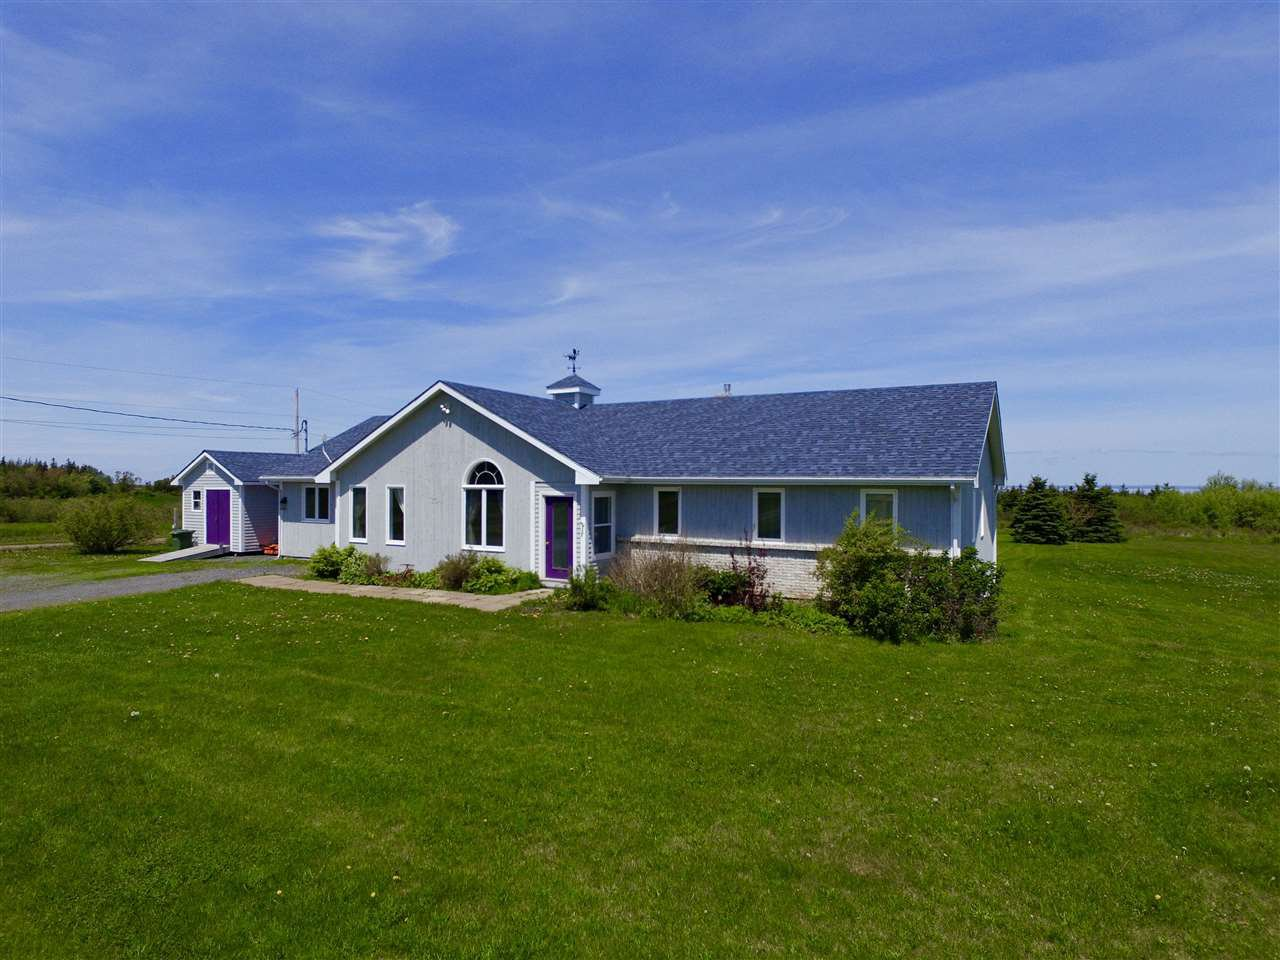 Main Photo: 3239 Highway 6 in Seafoam: 108-Rural Pictou County Residential for sale (Northern Region)  : MLS®# 202008960